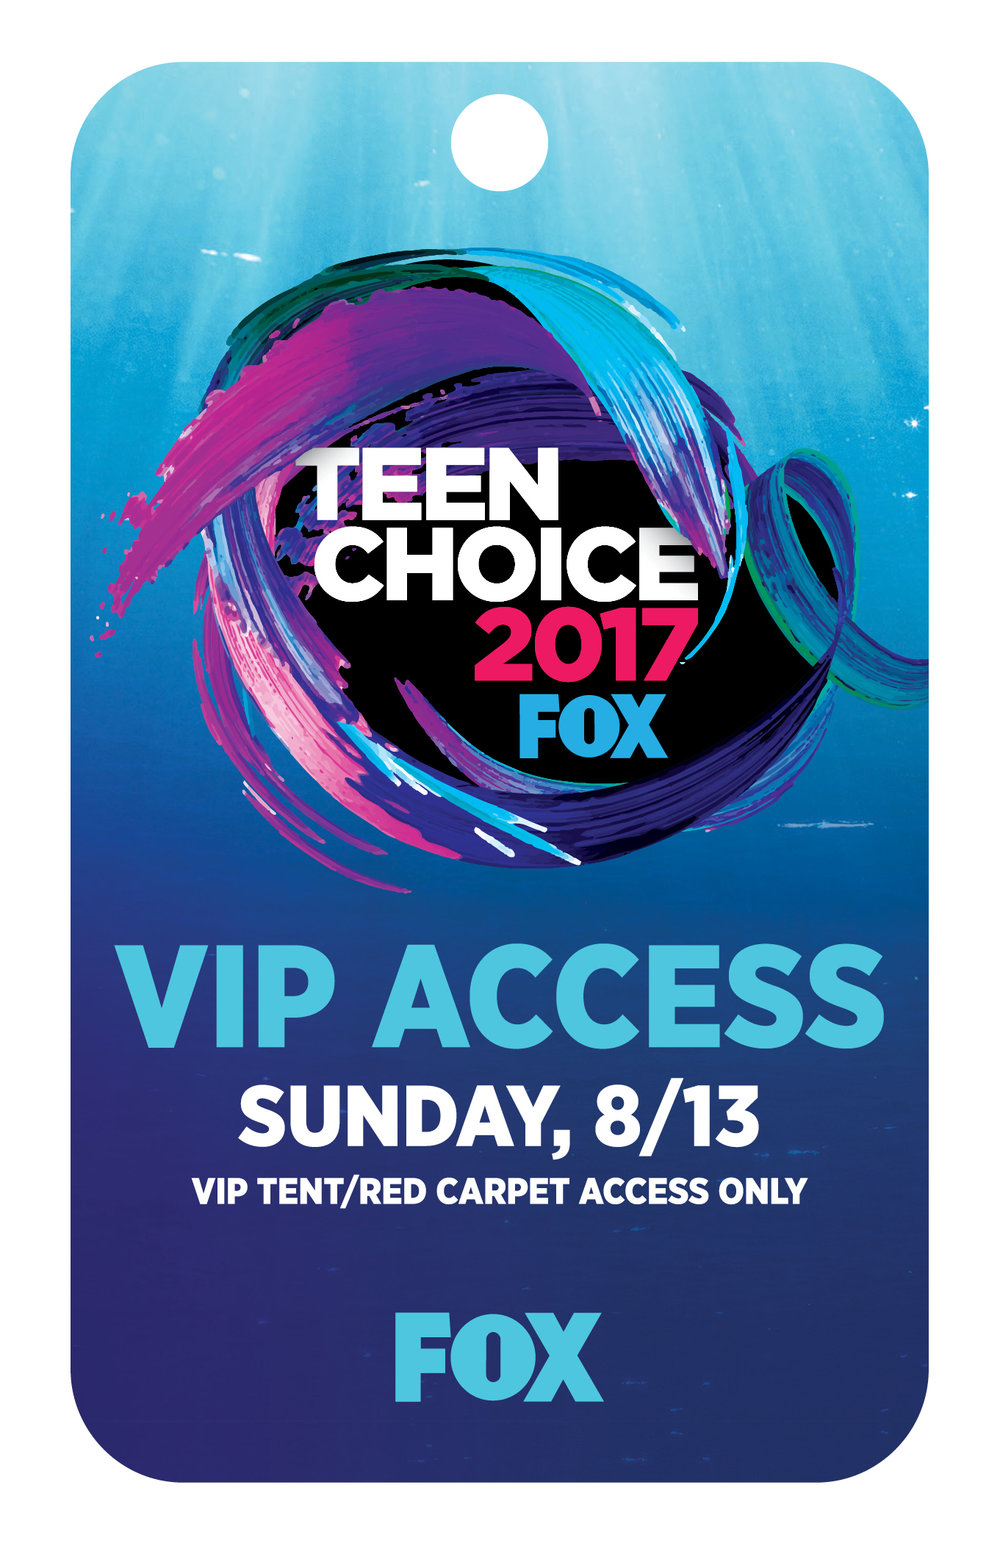 2017-TEEN-CHOICE-DECK22.jpg